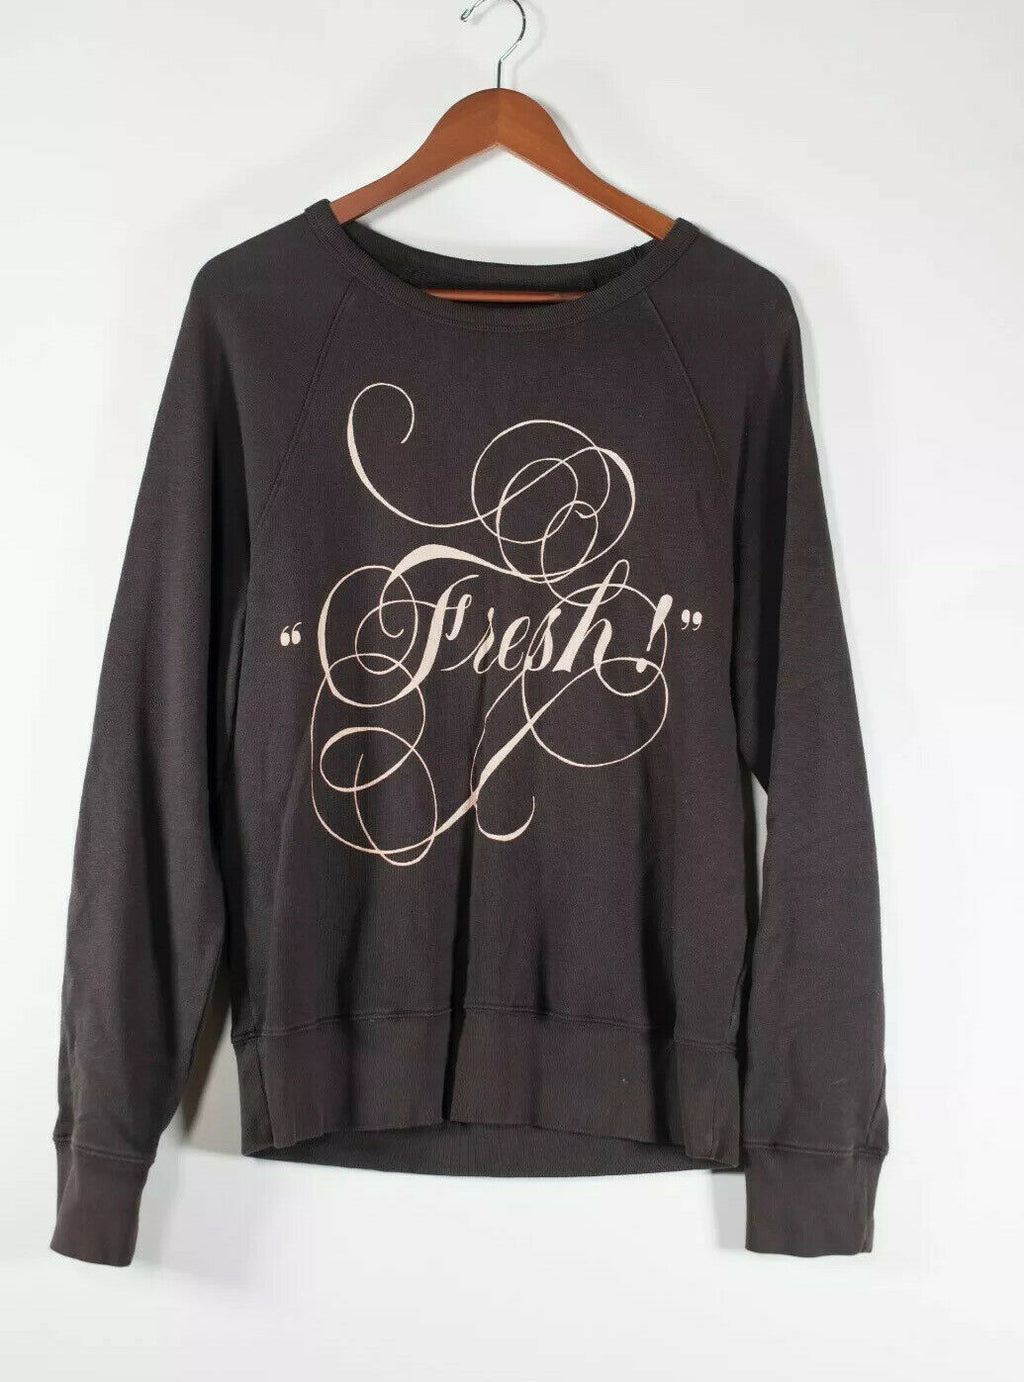 Acne Studios Womens Size XS Black Pullover Sweatshirt Graphic Jumper Sweater Top